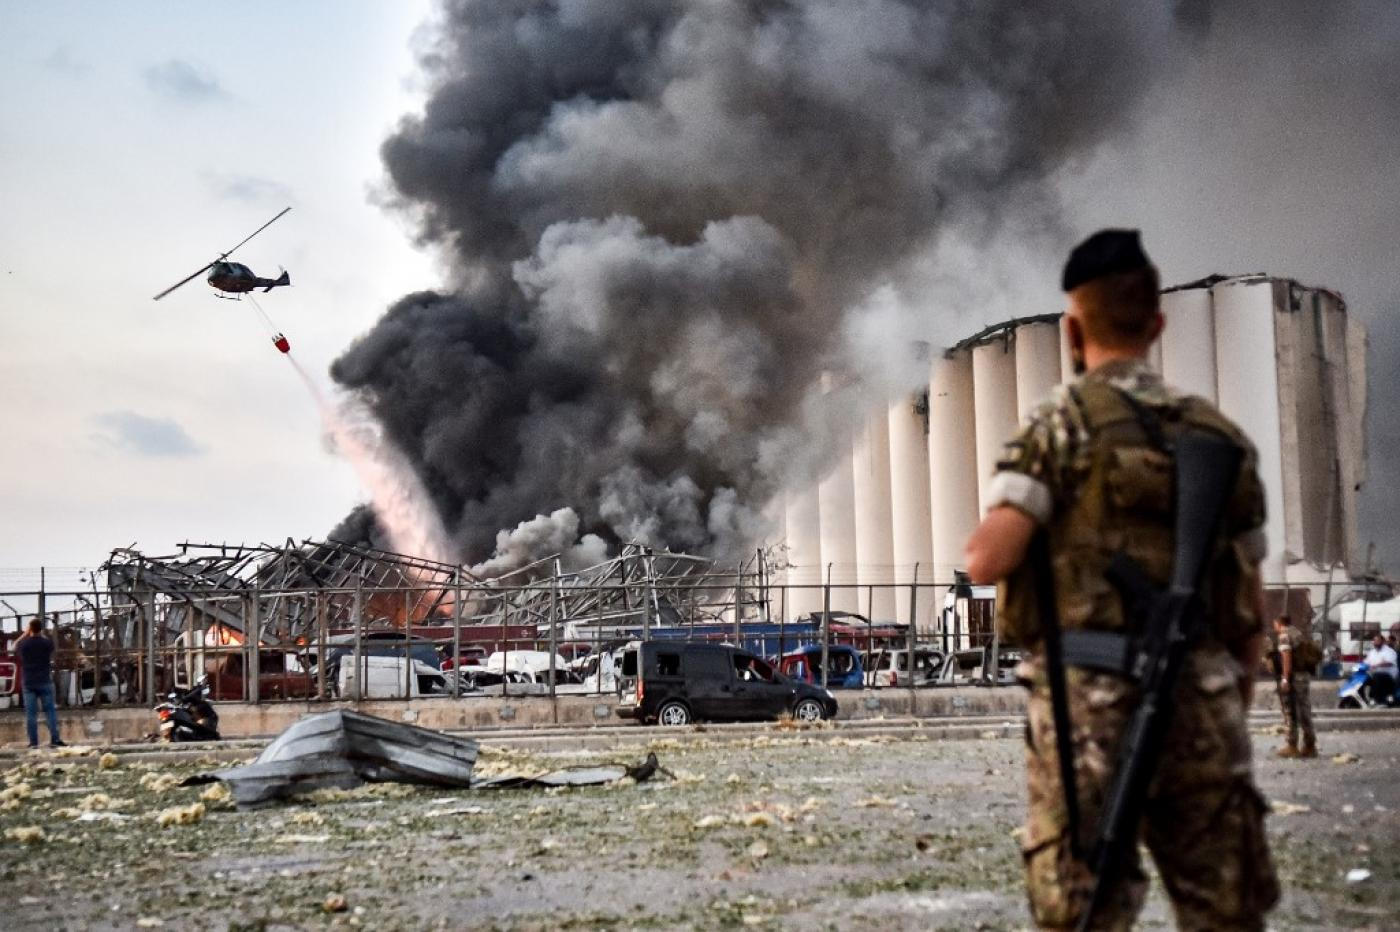 Lebanese soldiers stand guard while a helicopter puts out a fire at the scene of the explosion